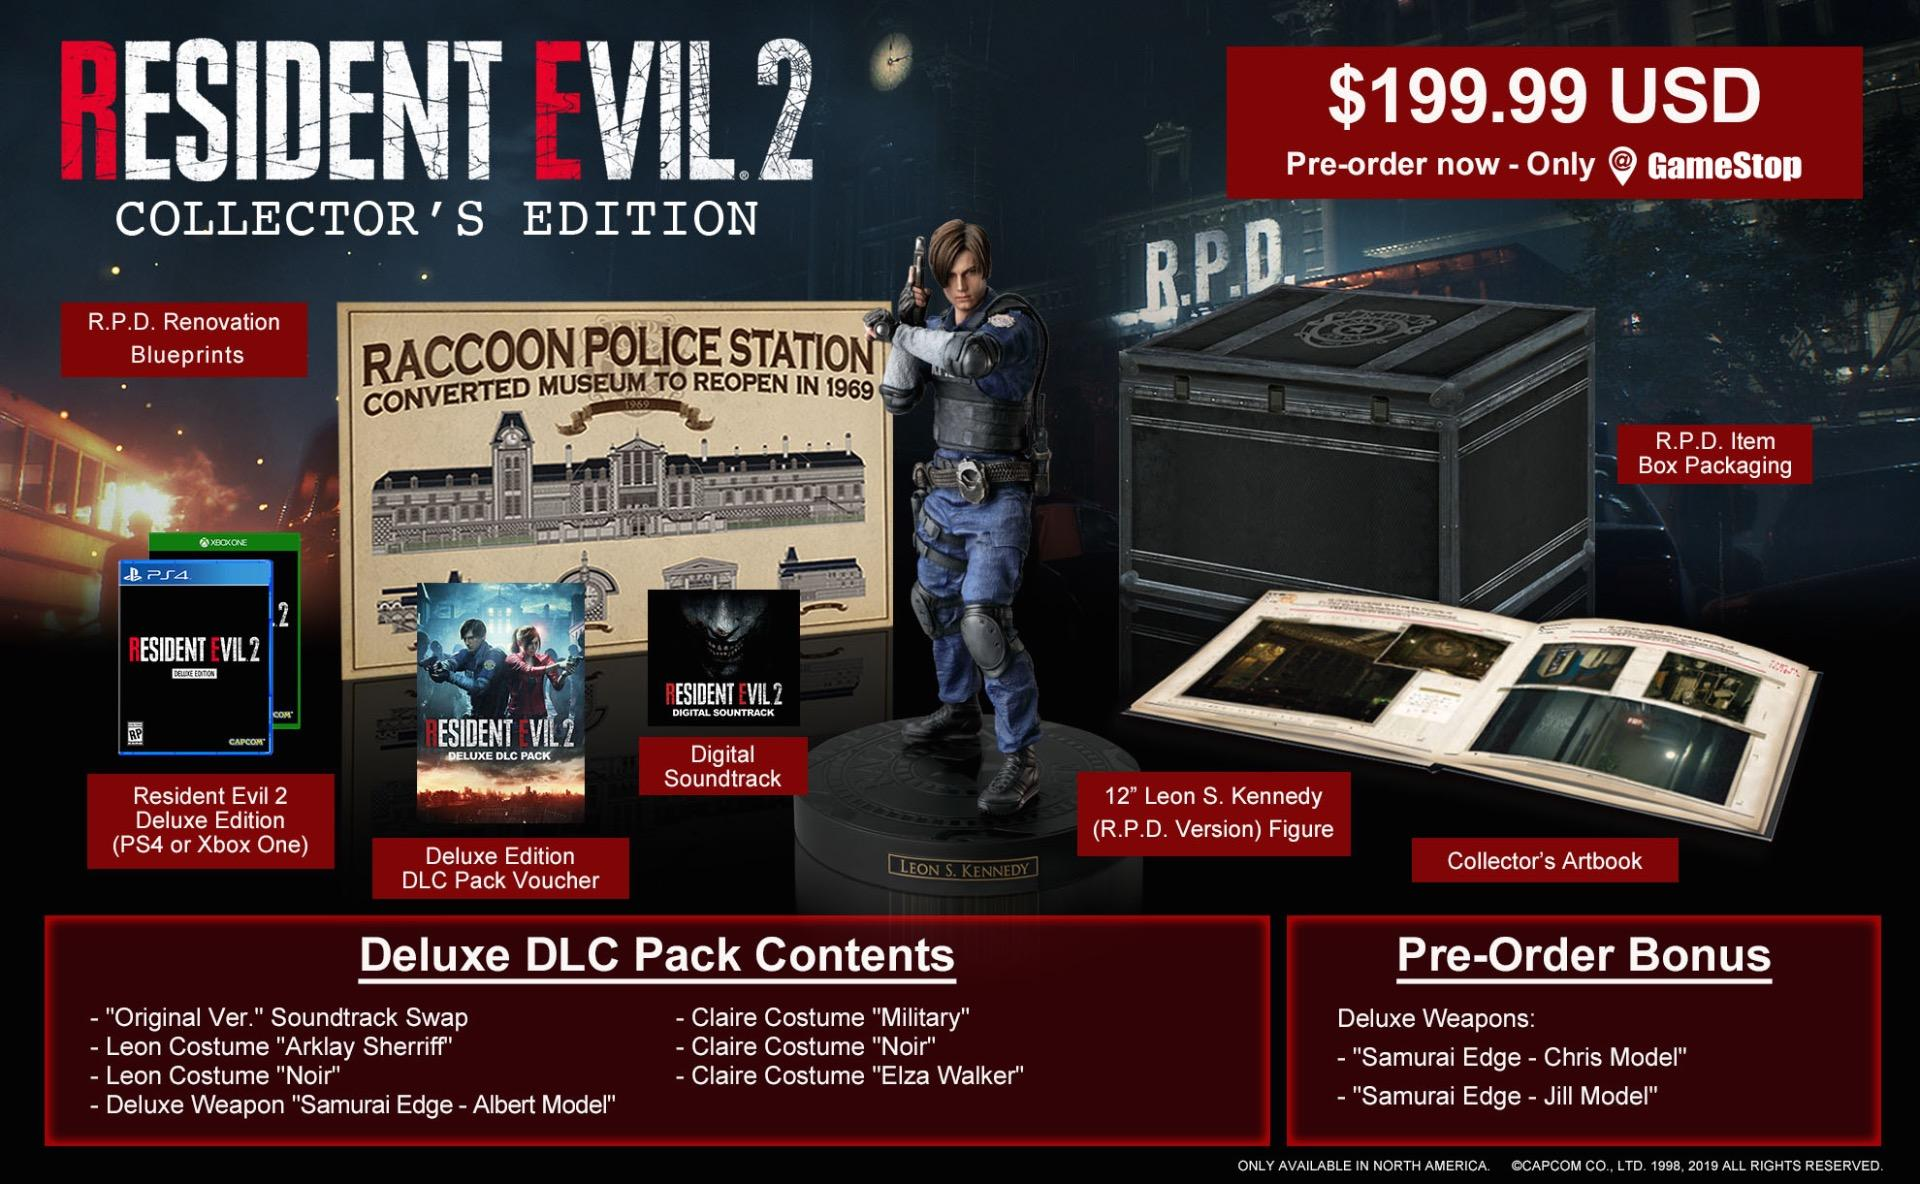 New Resident Evil 2 Remake Details And Collector's Edition Announced